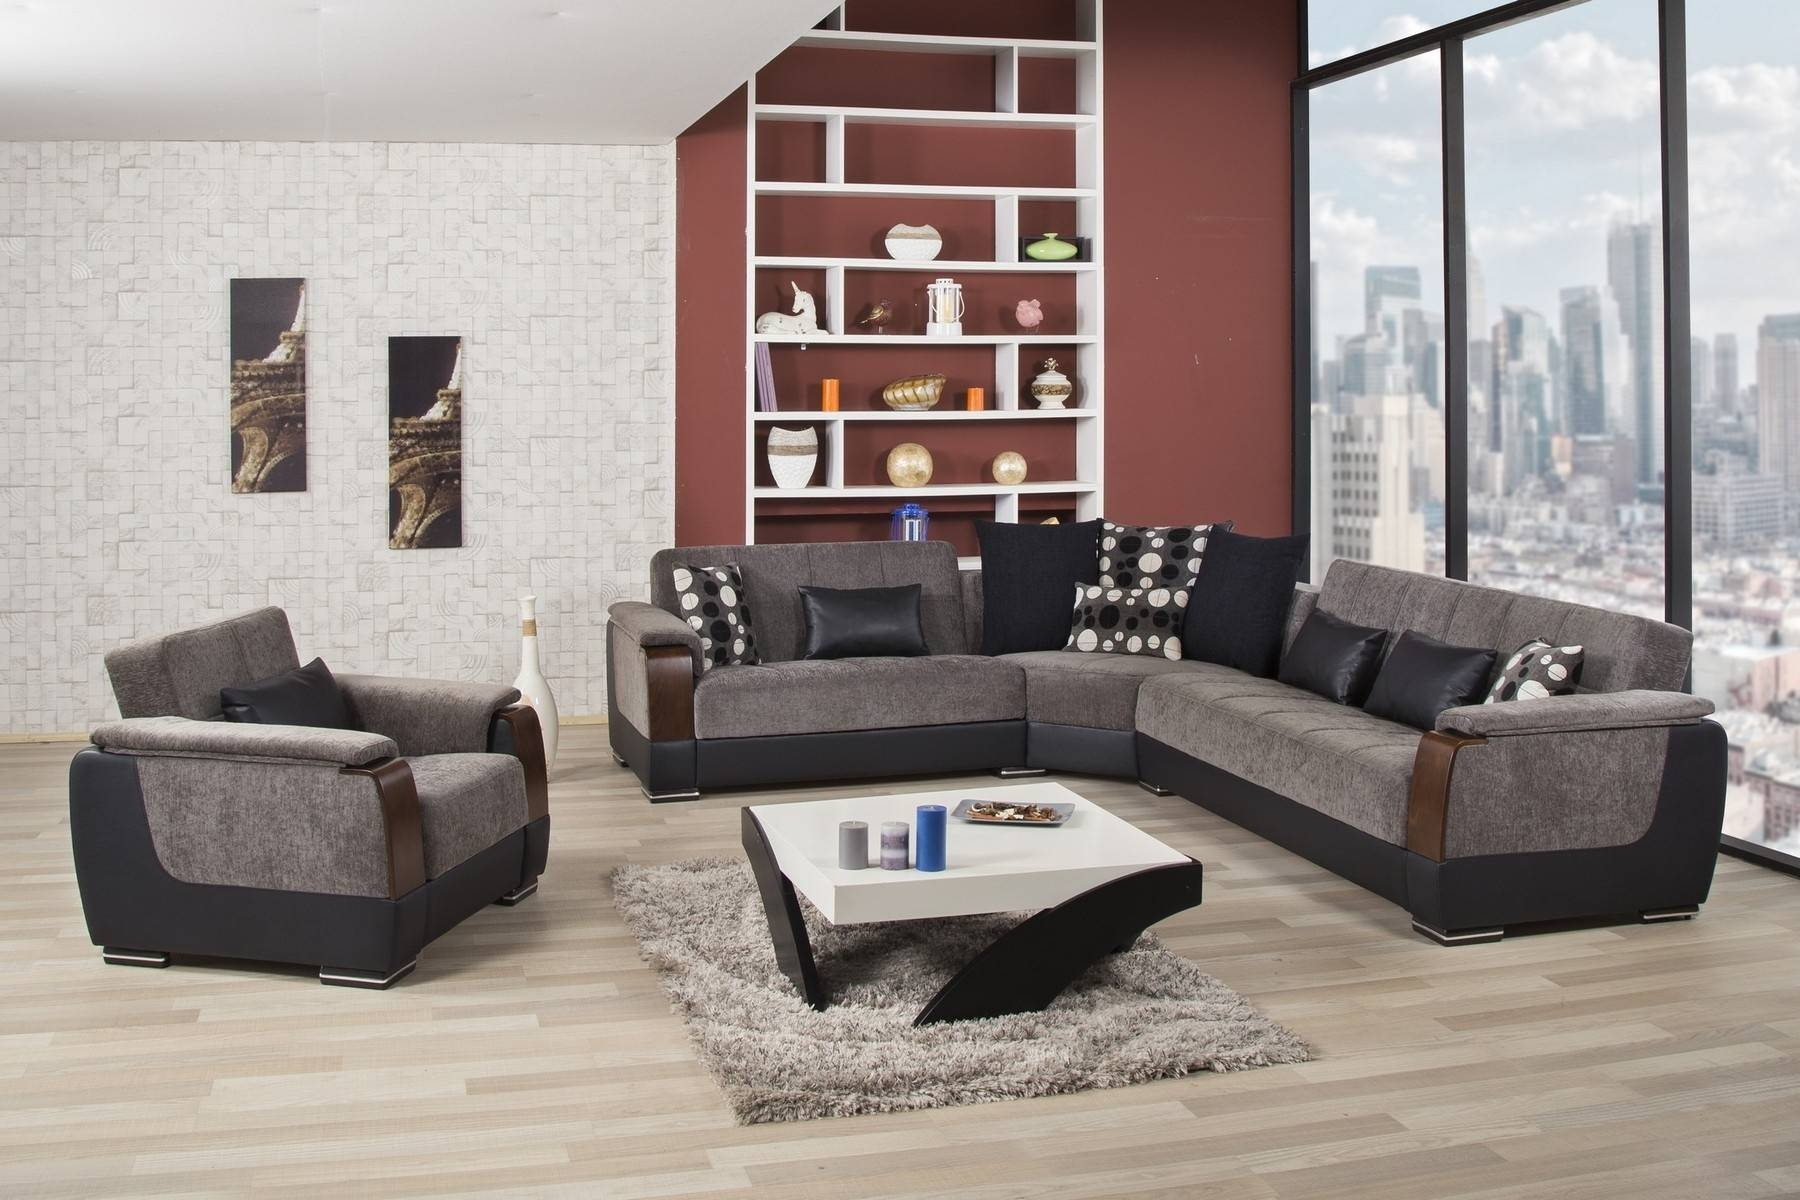 Furniture Home: Cool Modern Microfiber Sectional Sofas 28 For Your throughout Modern Microfiber Sectional Sofa (Image 9 of 30)